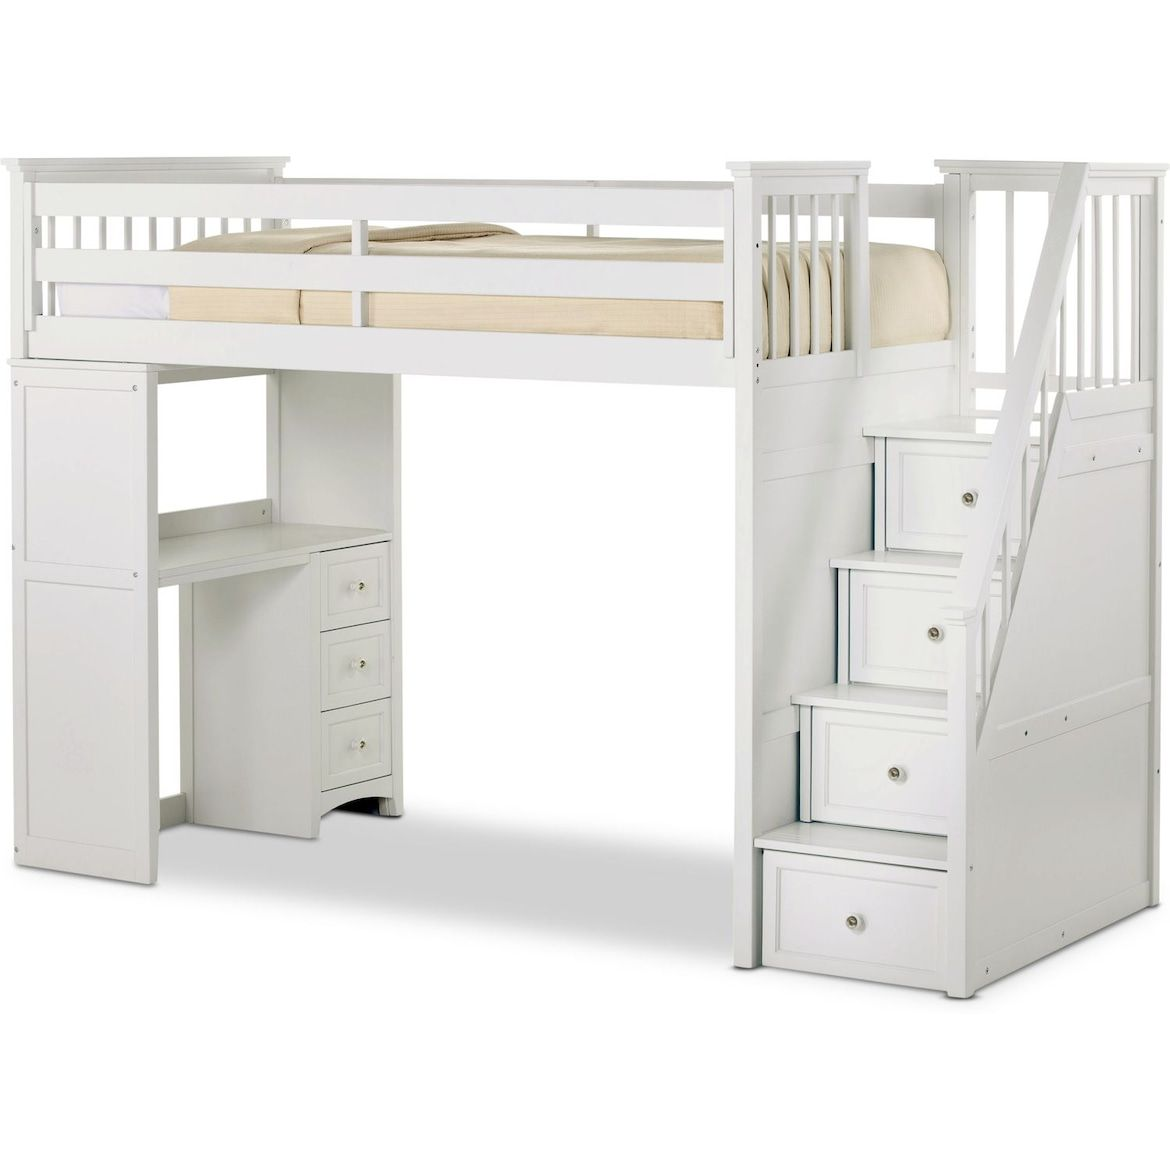 Flynn Loft Bed With Storage Stairs And Desk Value City Furniture And Mattresses Bunk Beds With Stairs White Loft Bed Bunk Bed Designs Loft bed with desk full size mattress